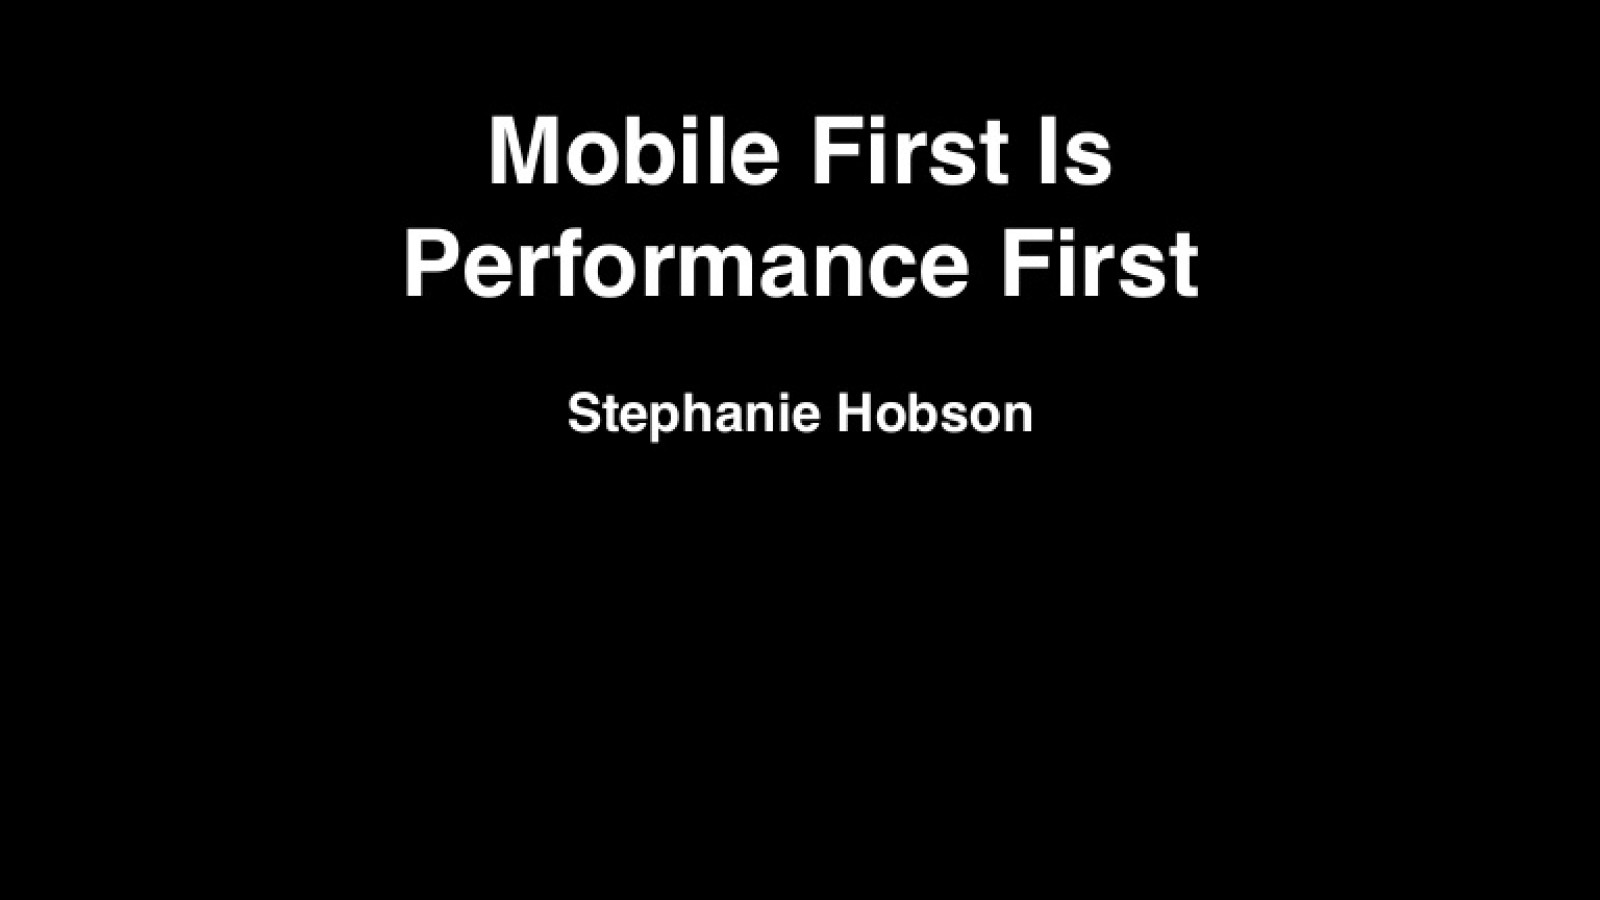 Mobile First Is Performance First